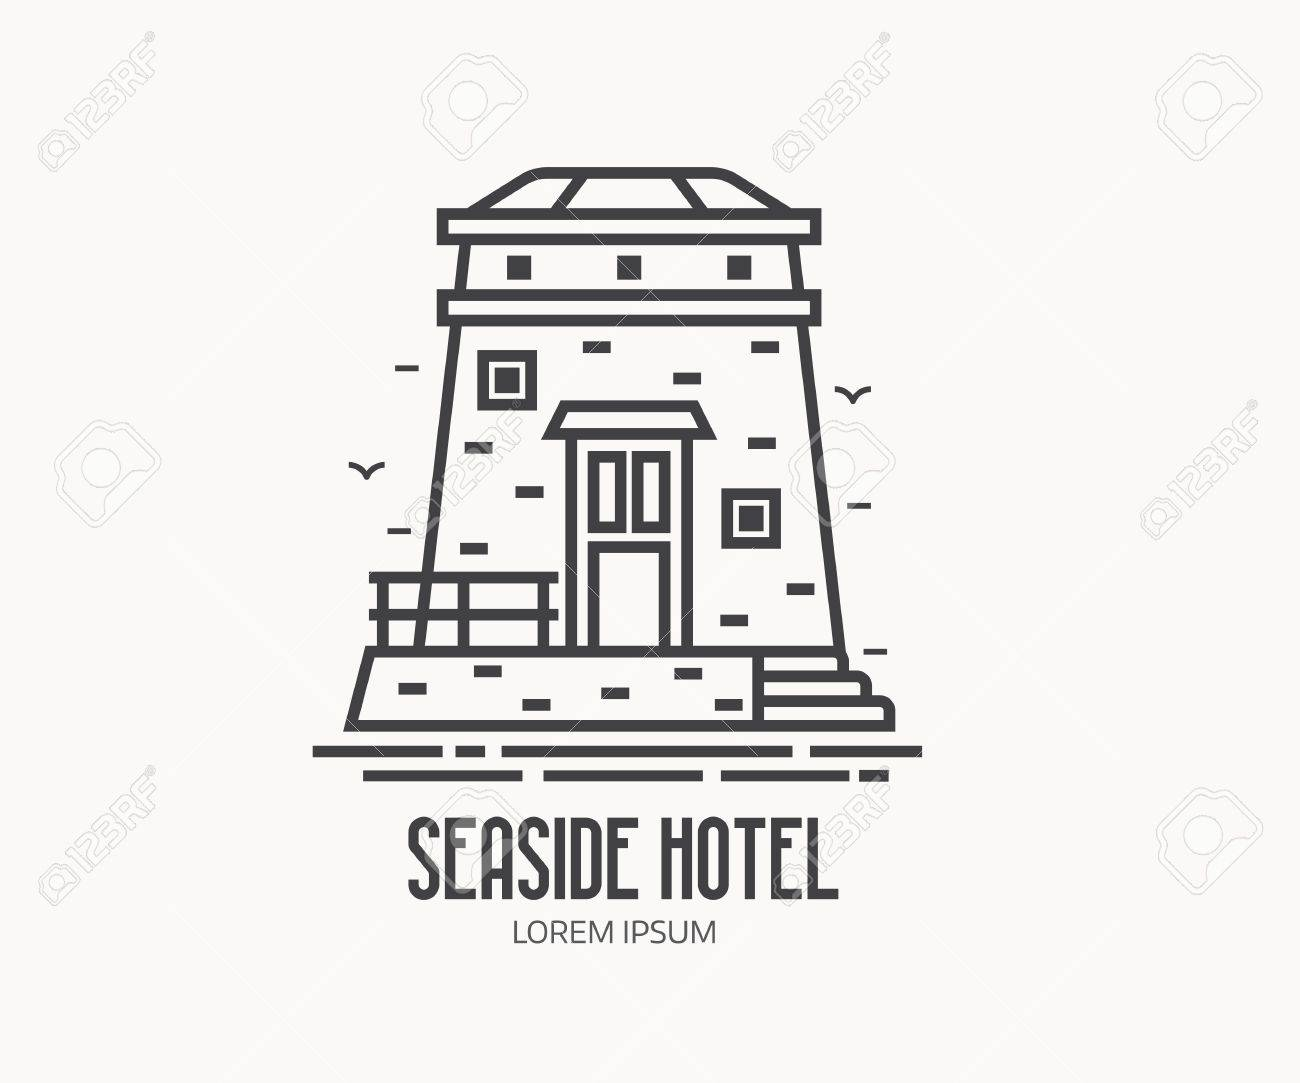 Seaside Hotel Or Label Template In Linear Style. Sea Observation ...